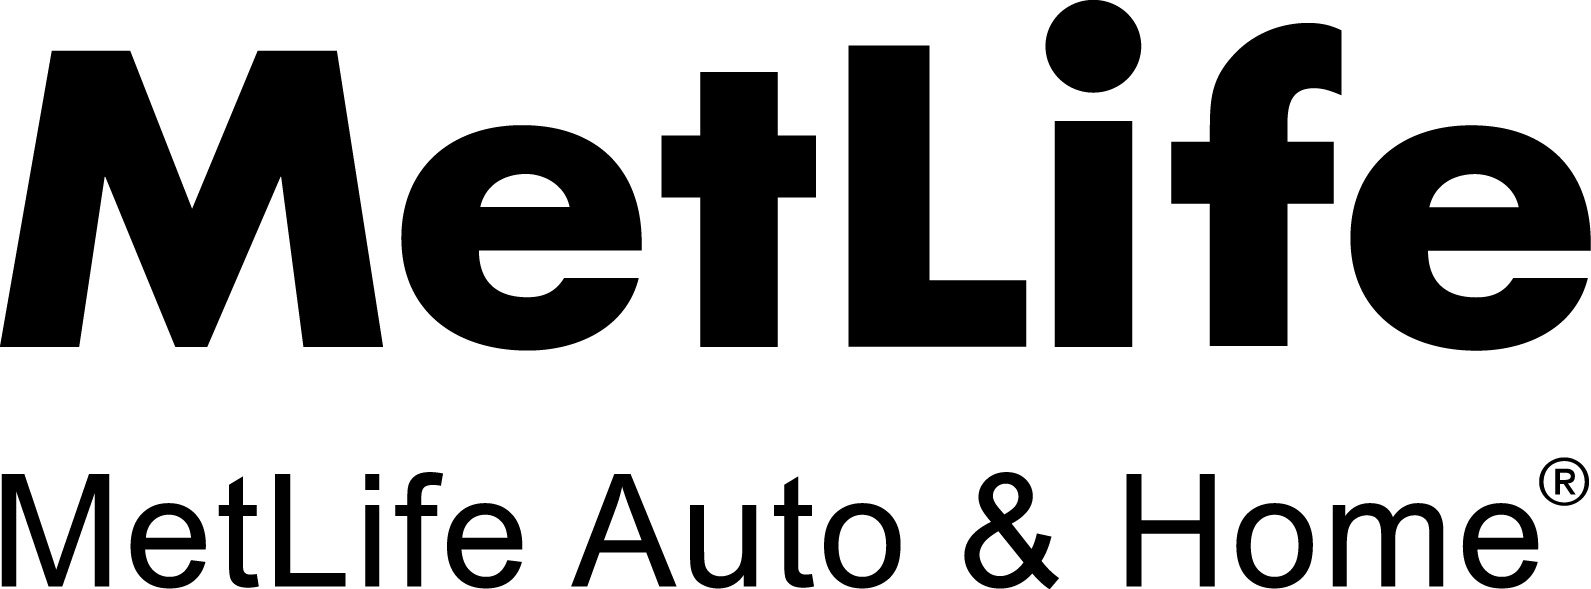 Metlife Auto & Home Travel Tips